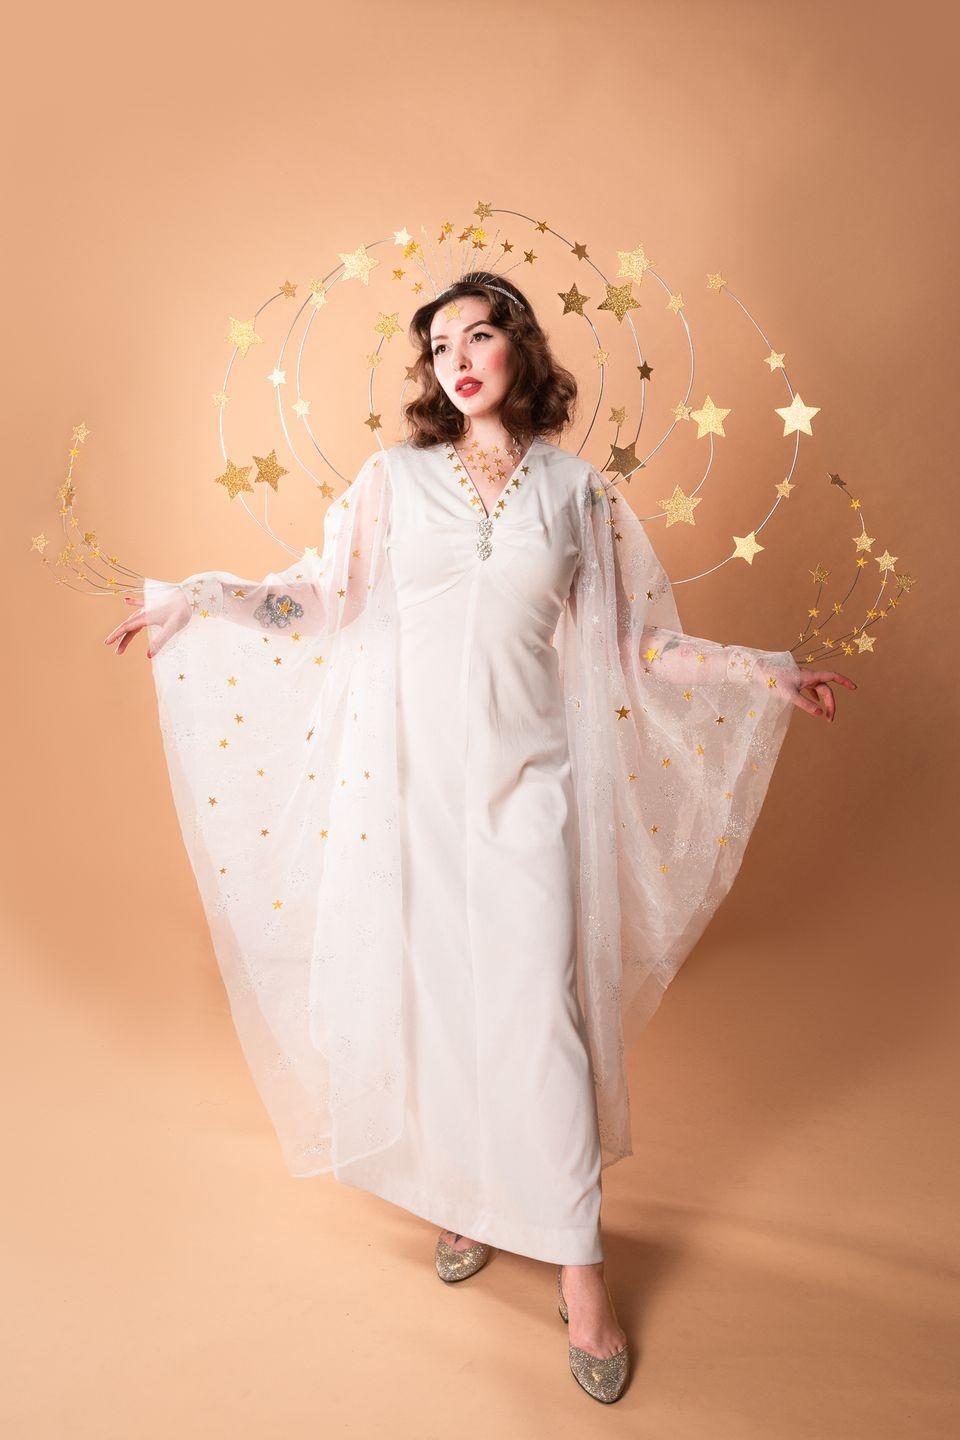 """<p>Inspired by the classic 1940s film <em>Ziegfeld Girl,</em> this costume is sheer glamour—and easy to make with a simple white maxi dress you can quickly alter.</p><p><strong>Get the tutorial at <a href=""""http://keikolynn.com/2018/10/ziegfeld-girl-costume-hedy-lamarr/"""" rel=""""nofollow noopener"""" target=""""_blank"""" data-ylk=""""slk:Keiko Lynn"""" class=""""link rapid-noclick-resp"""">Keiko Lynn</a>.</strong></p><p><a class=""""link rapid-noclick-resp"""" href=""""https://www.amazon.com/Cutouts-Shining-Glitter-Cardboard-Metallic/dp/B07V8G7PR4?tag=syn-yahoo-20&ascsubtag=%5Bartid%7C10050.g.4571%5Bsrc%7Cyahoo-us"""" rel=""""nofollow noopener"""" target=""""_blank"""" data-ylk=""""slk:SHOP GOLD STAR CUTOUTS"""">SHOP GOLD STAR CUTOUTS</a><strong><br></strong></p>"""